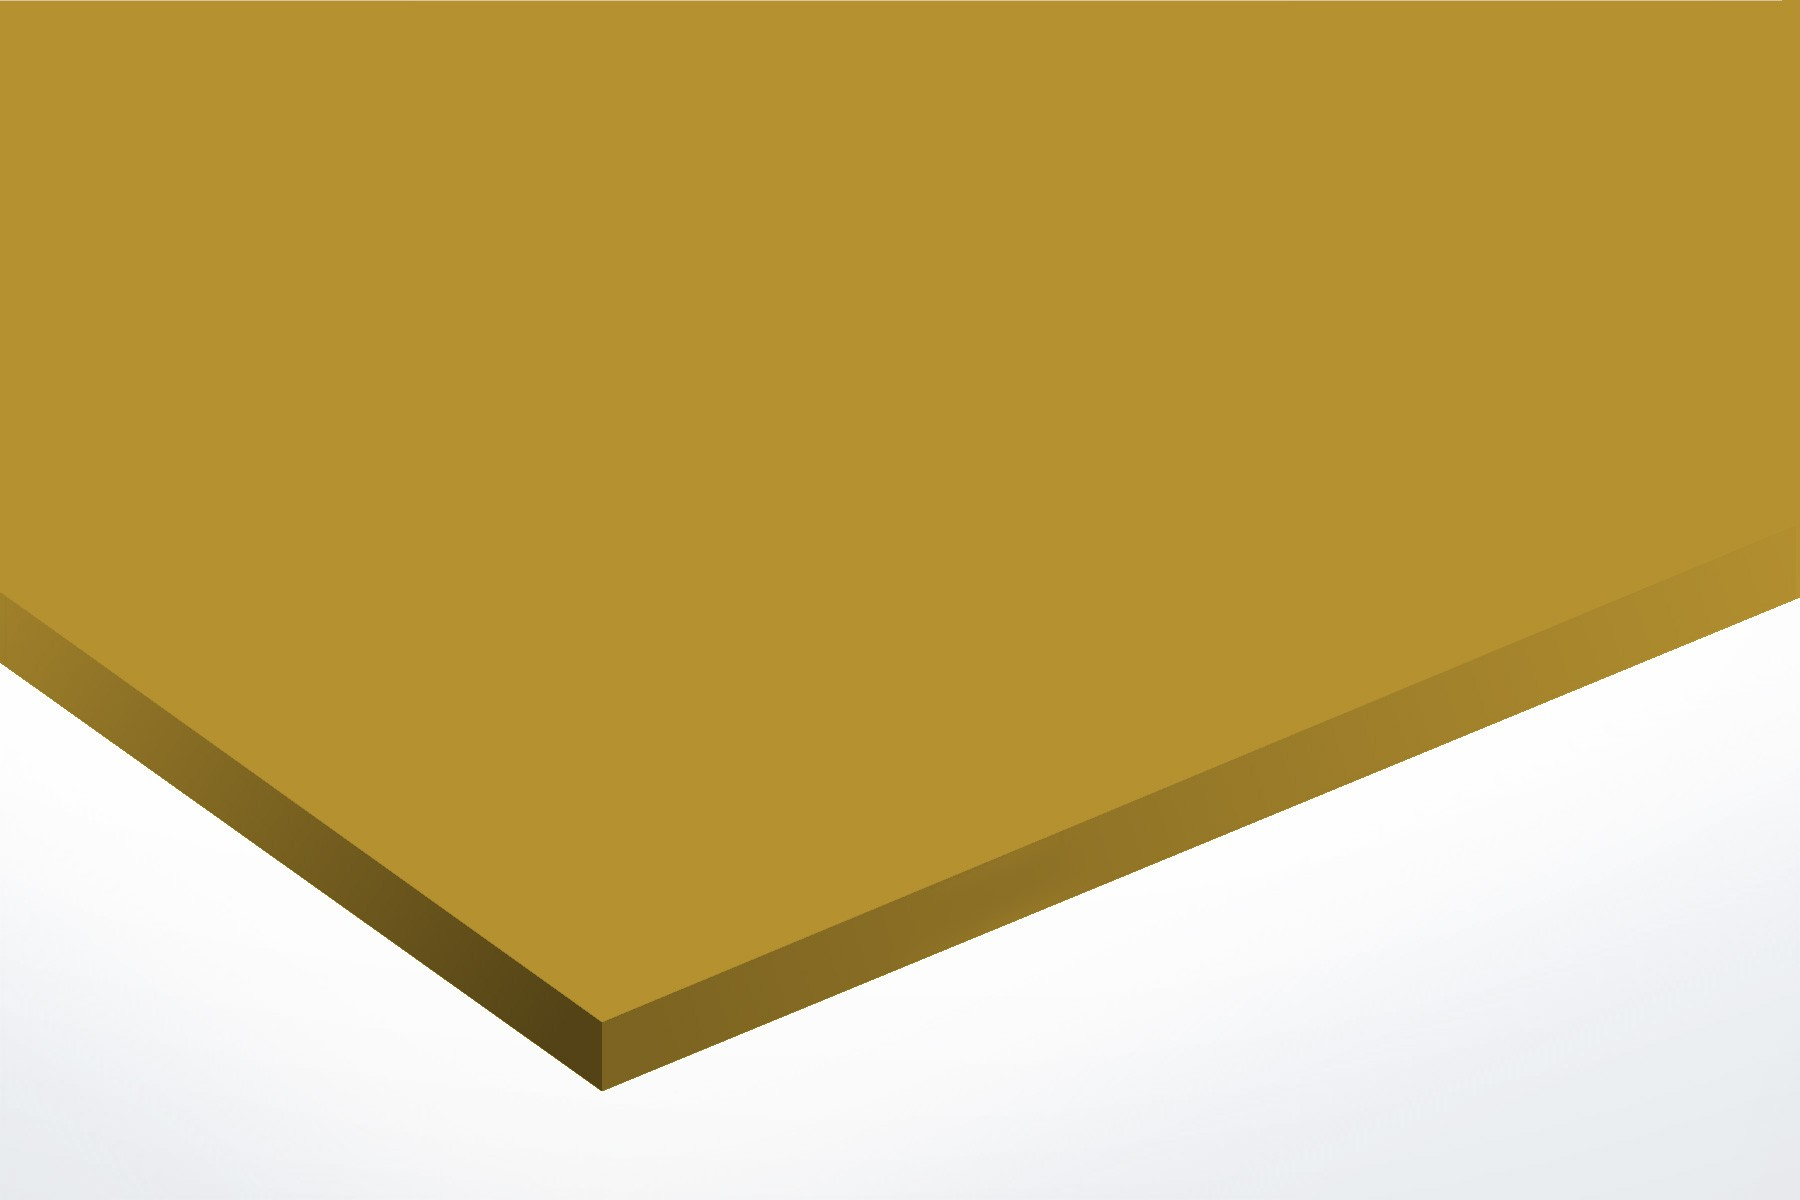 Anodised Aluminium Gold,  Matte, 0.5mm x 1000mm x 500mm